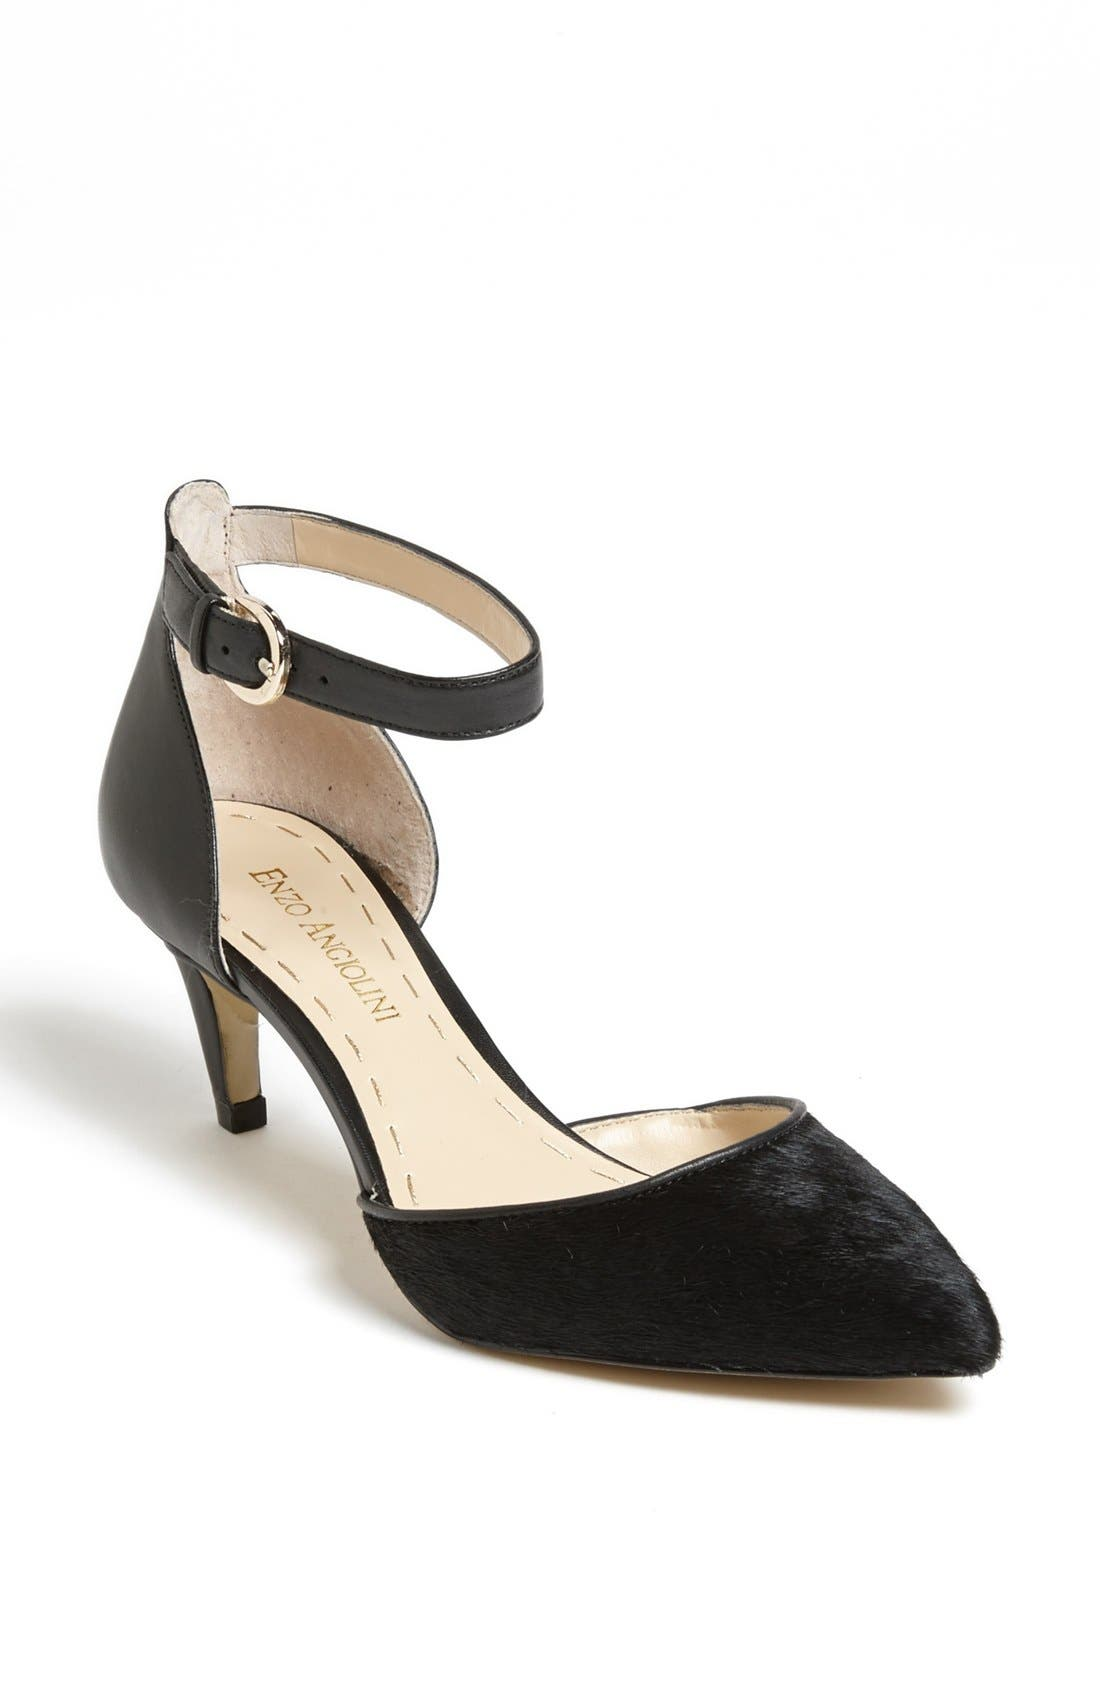 Alternate Image 1 Selected - Enzo Angiolini 'Crystani' Pump